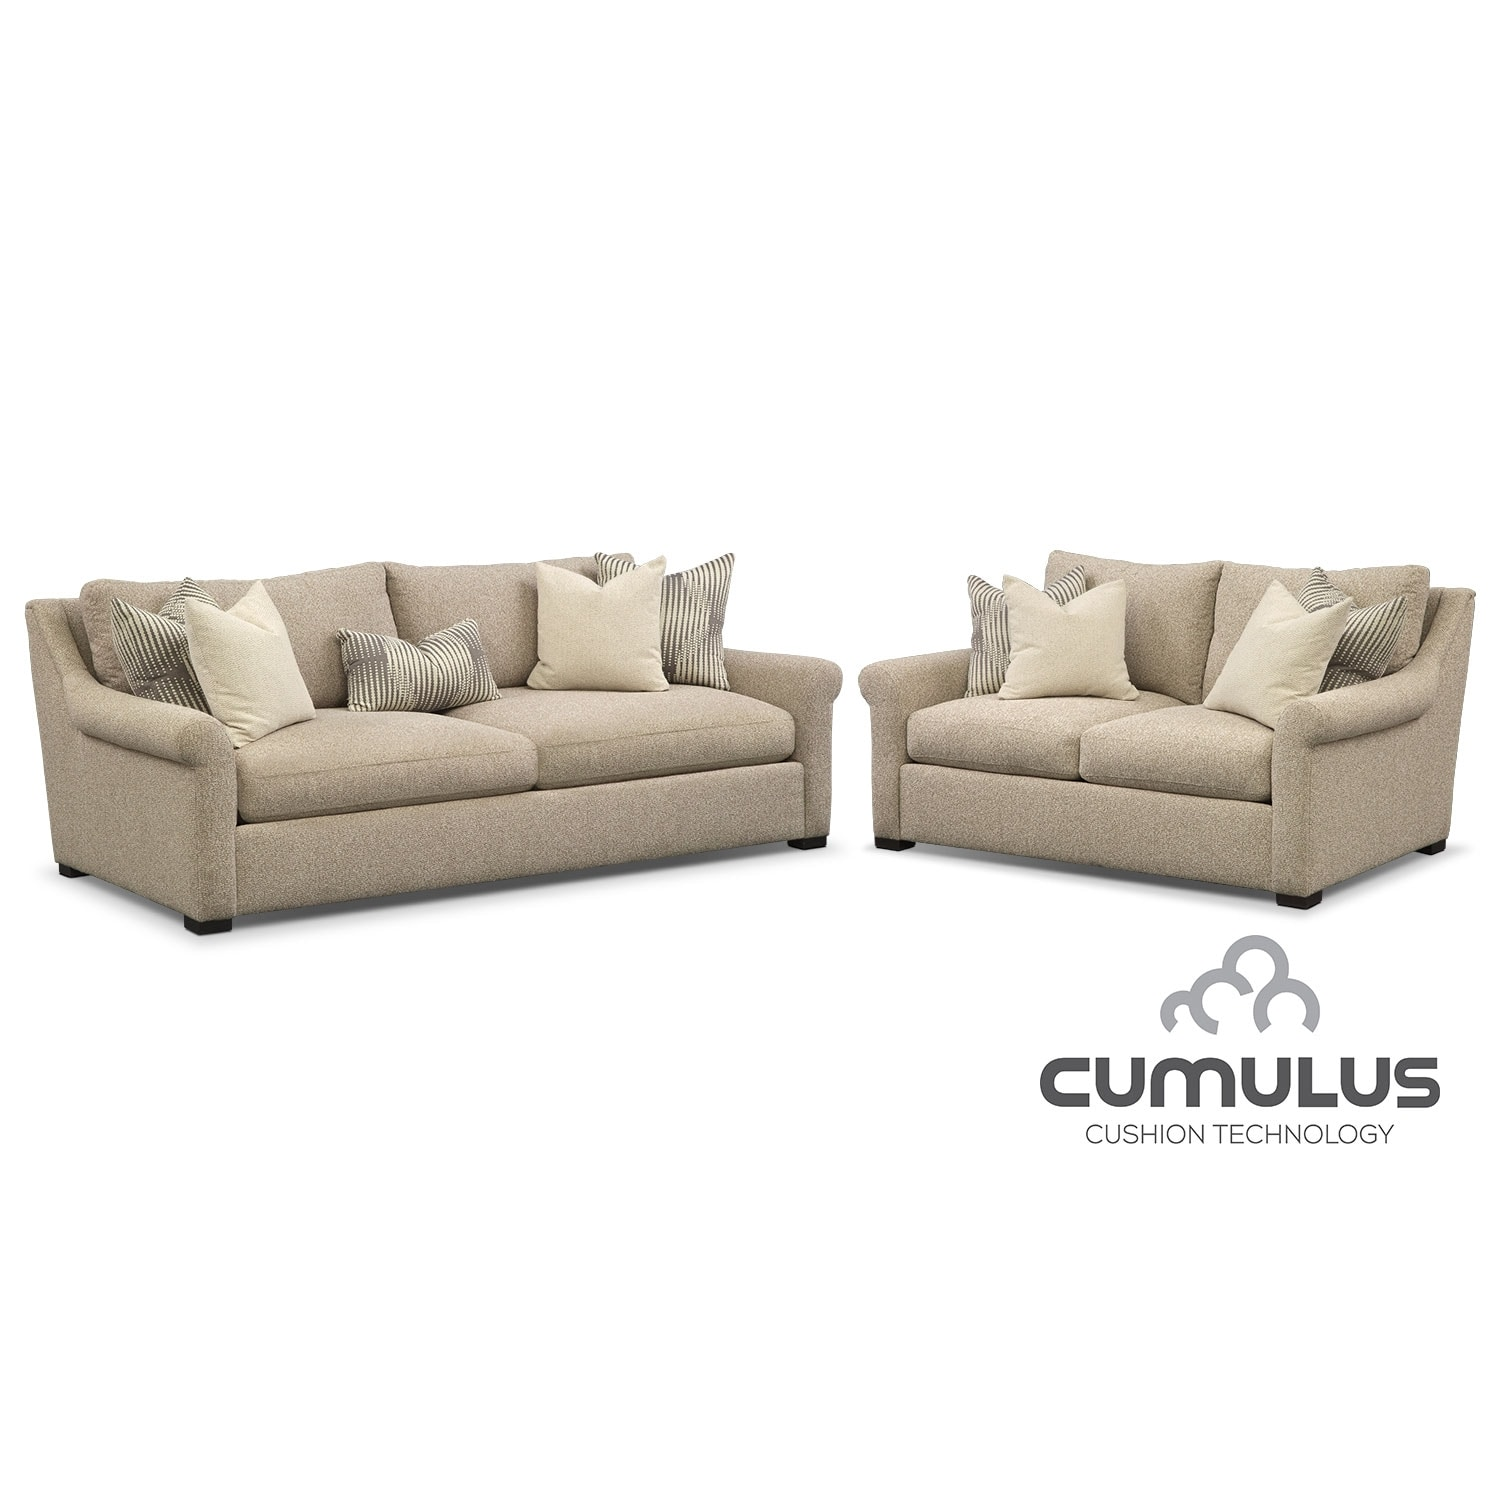 Roberston Cumulus Sofa and Loveseat Set - Beige